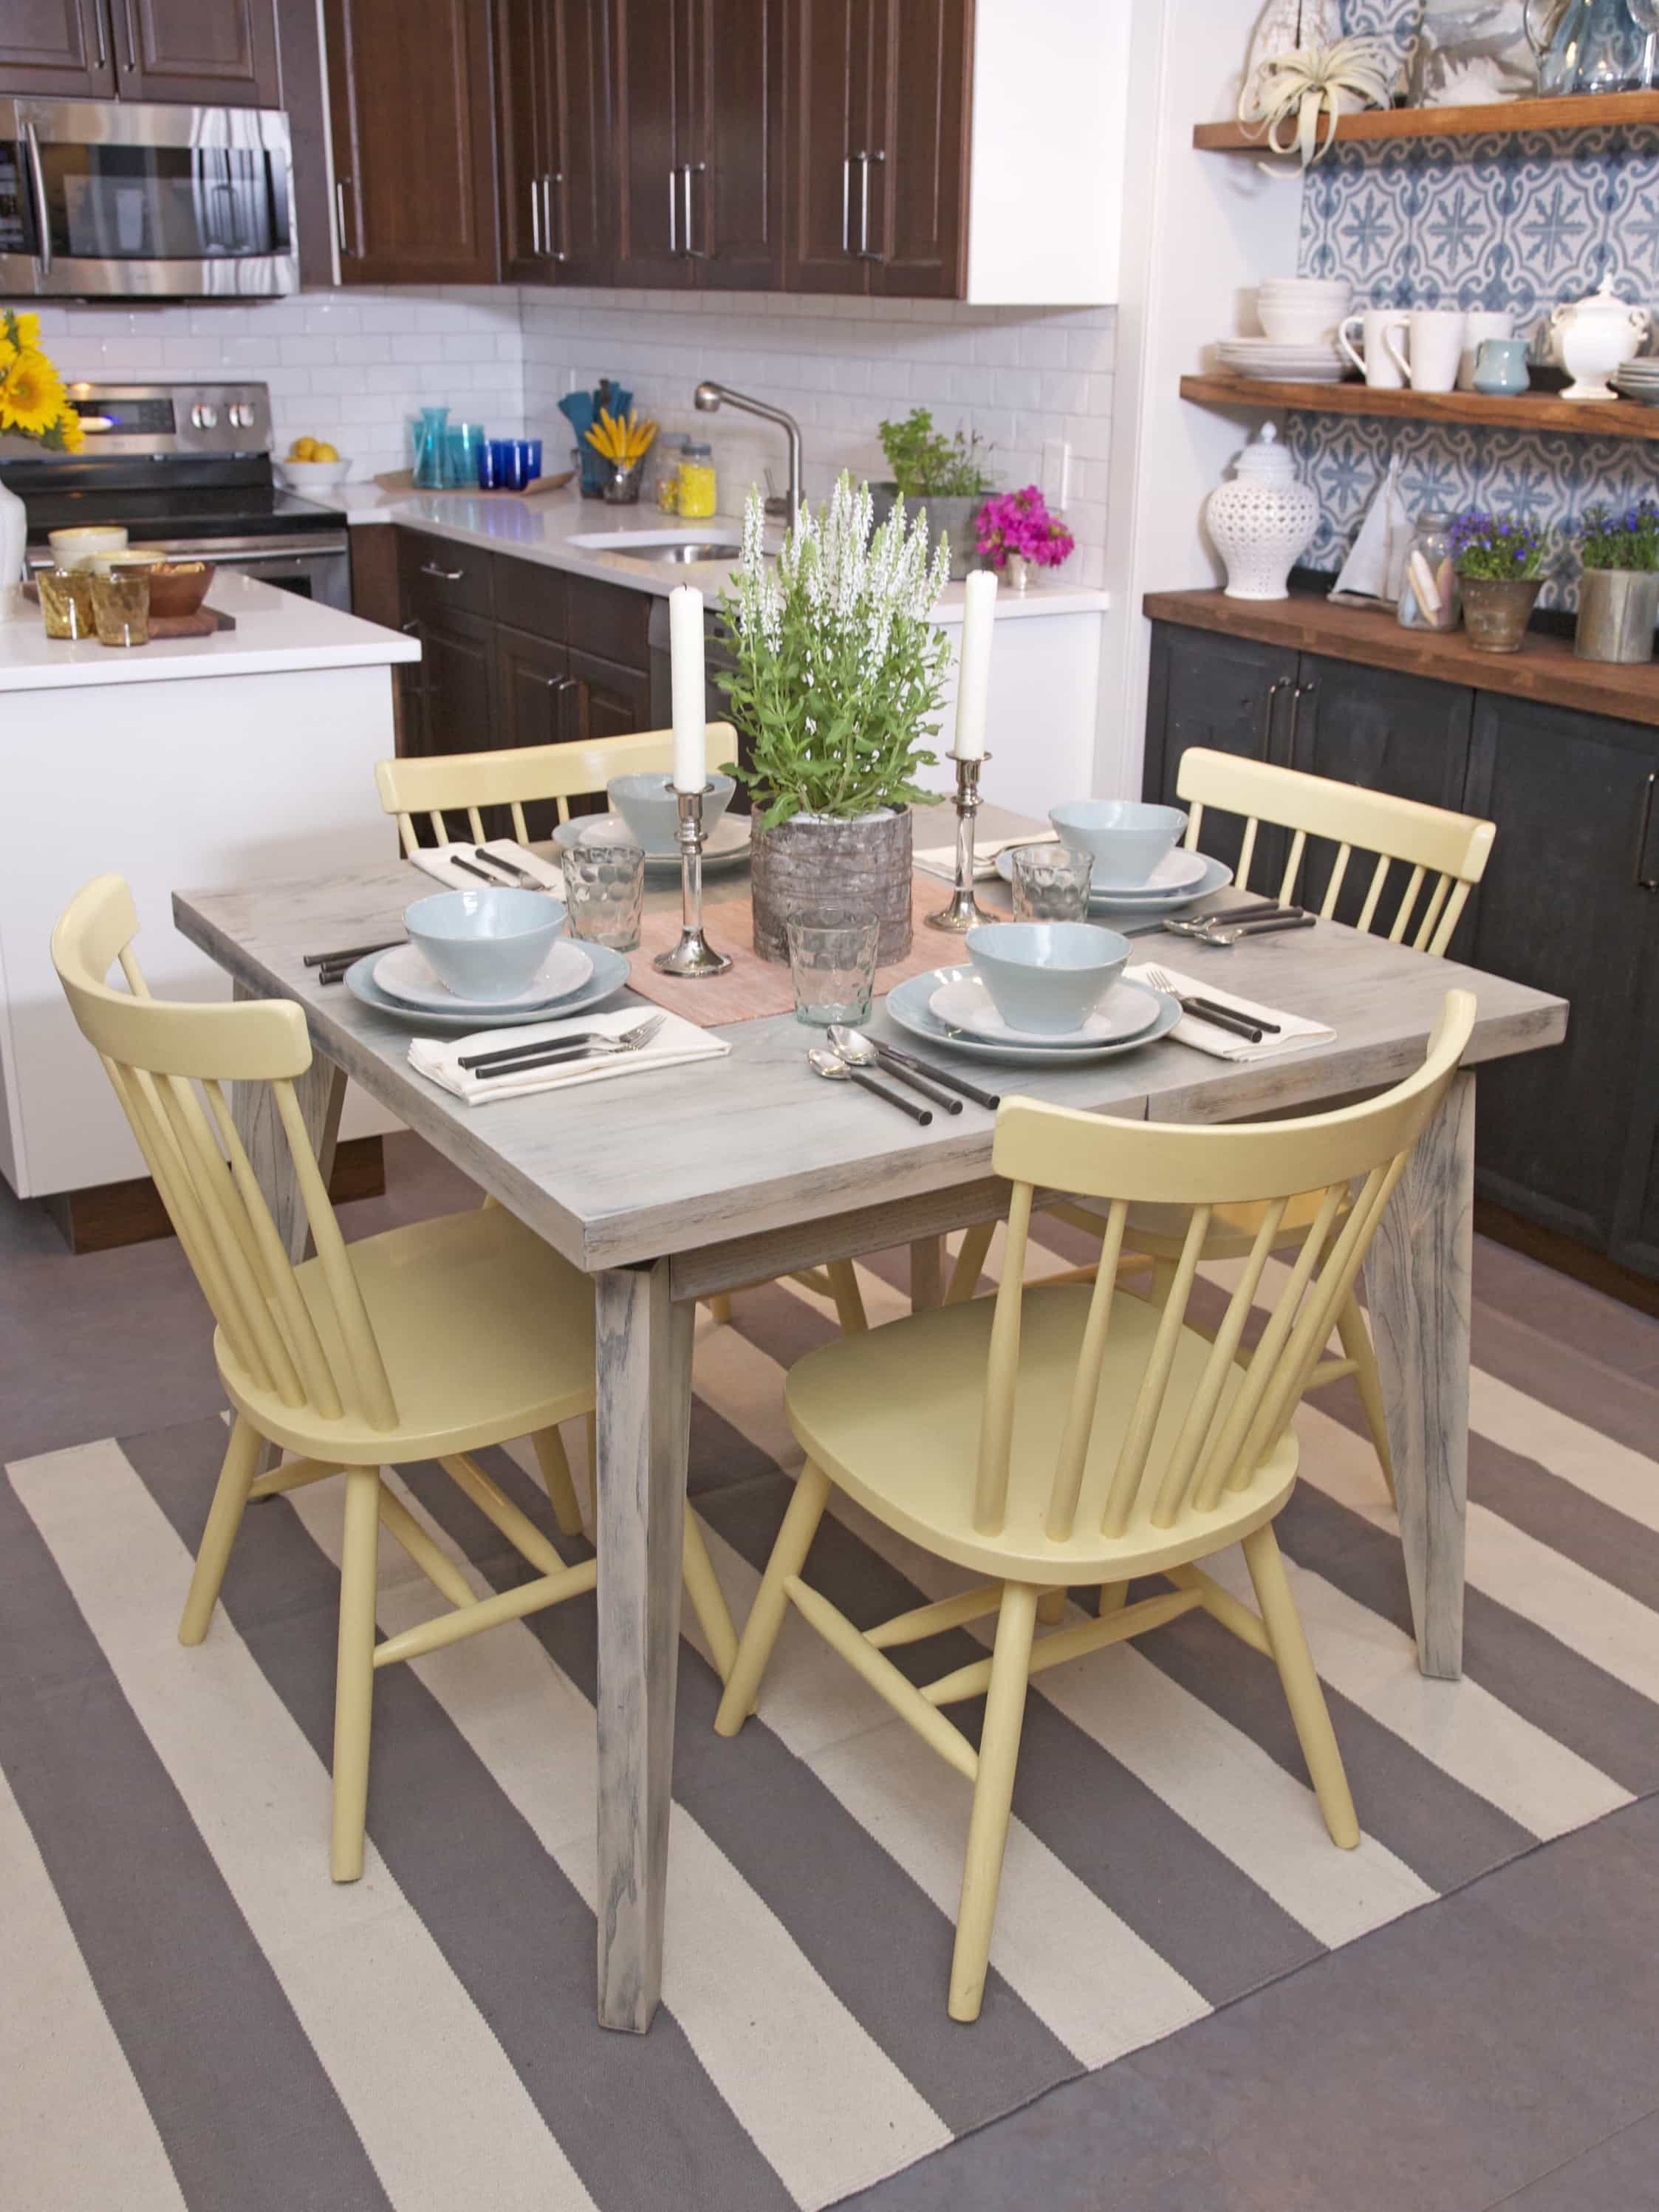 Featured Image of Coastal Kitchen With Whitewashed Dining Table